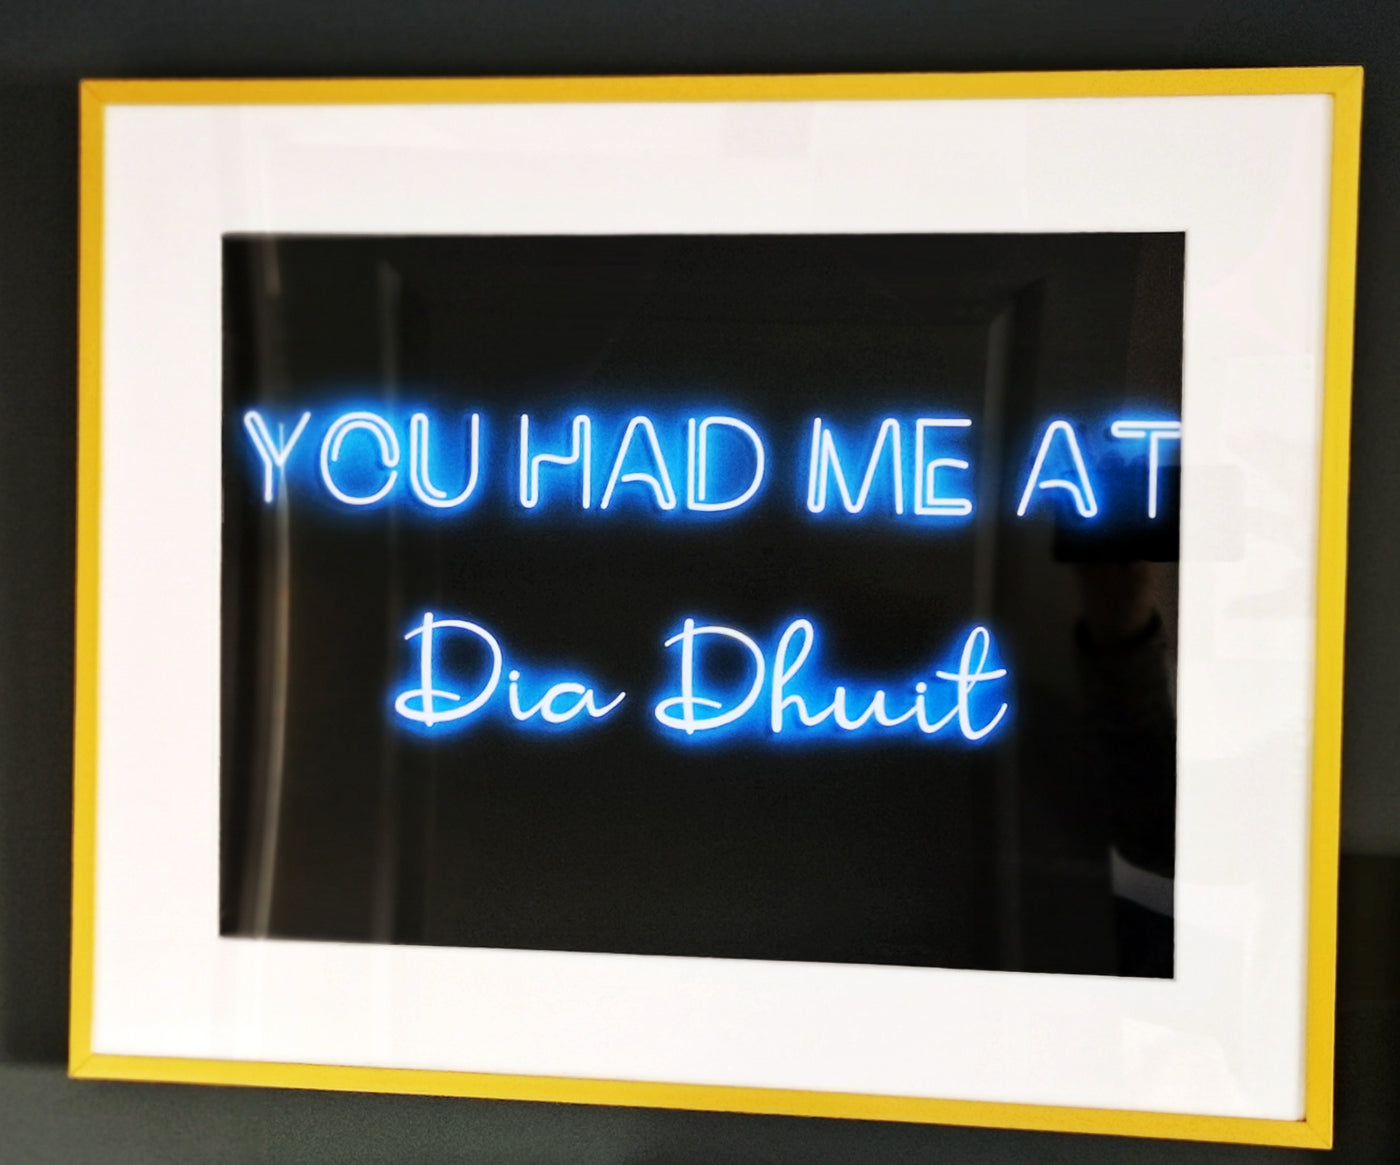 You had me at dia  dhuit